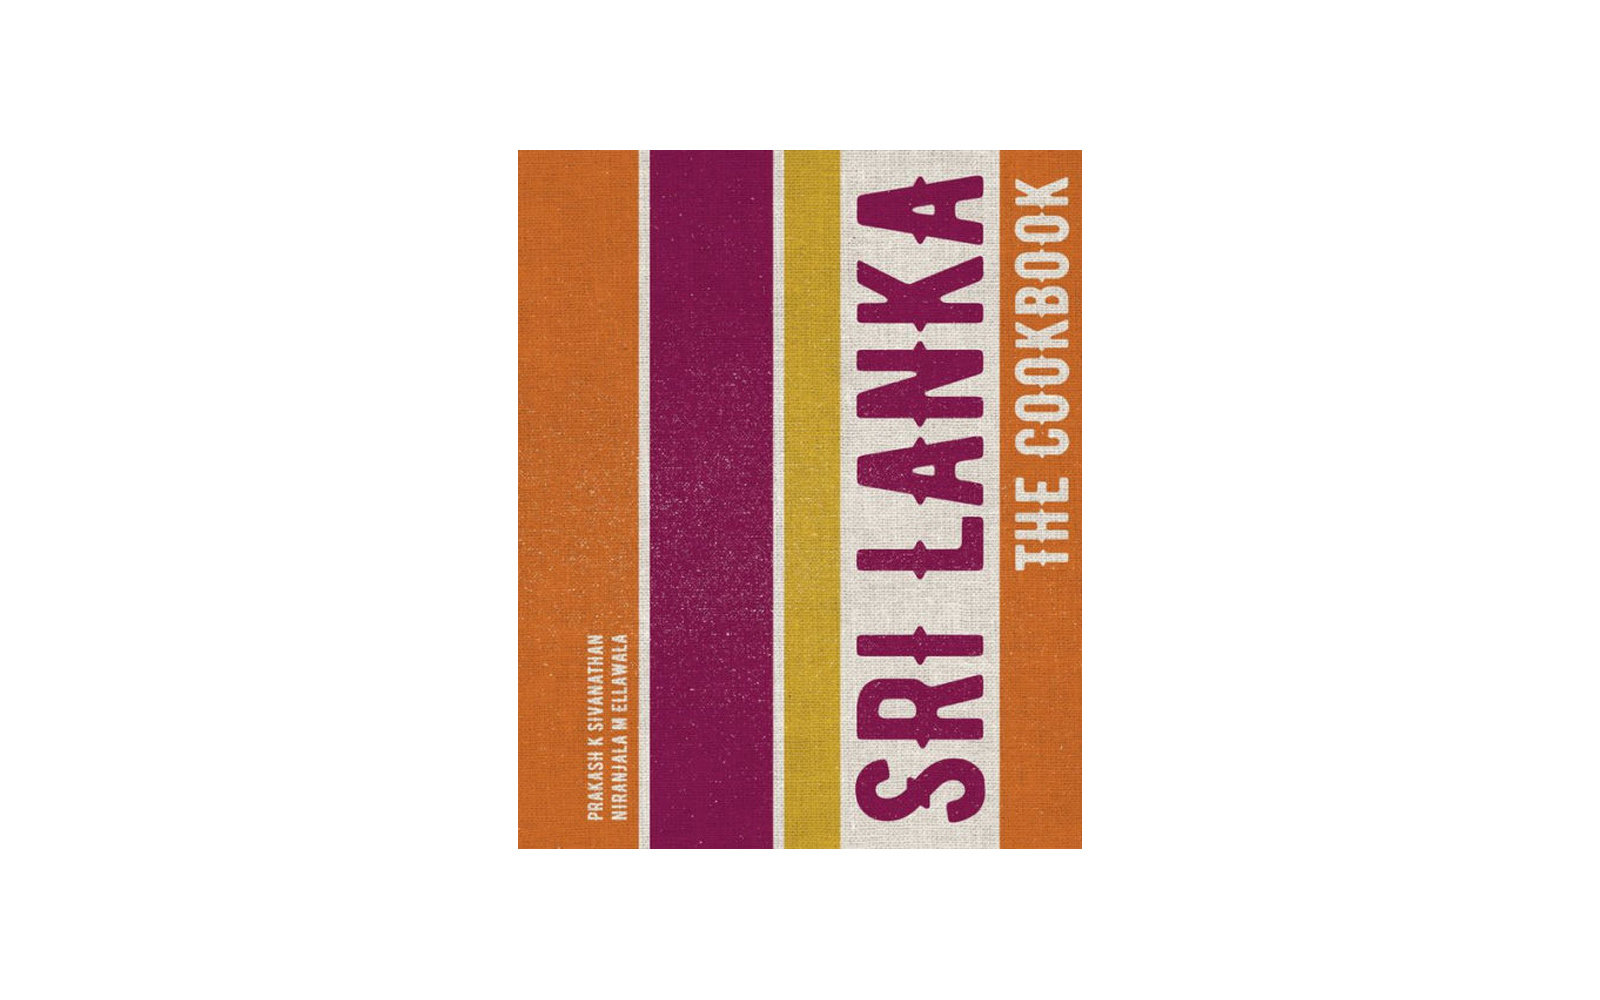 Sri Lanka, The Cookbook, by Prakash K. Sivanathan and Niranjala M. Ellawala